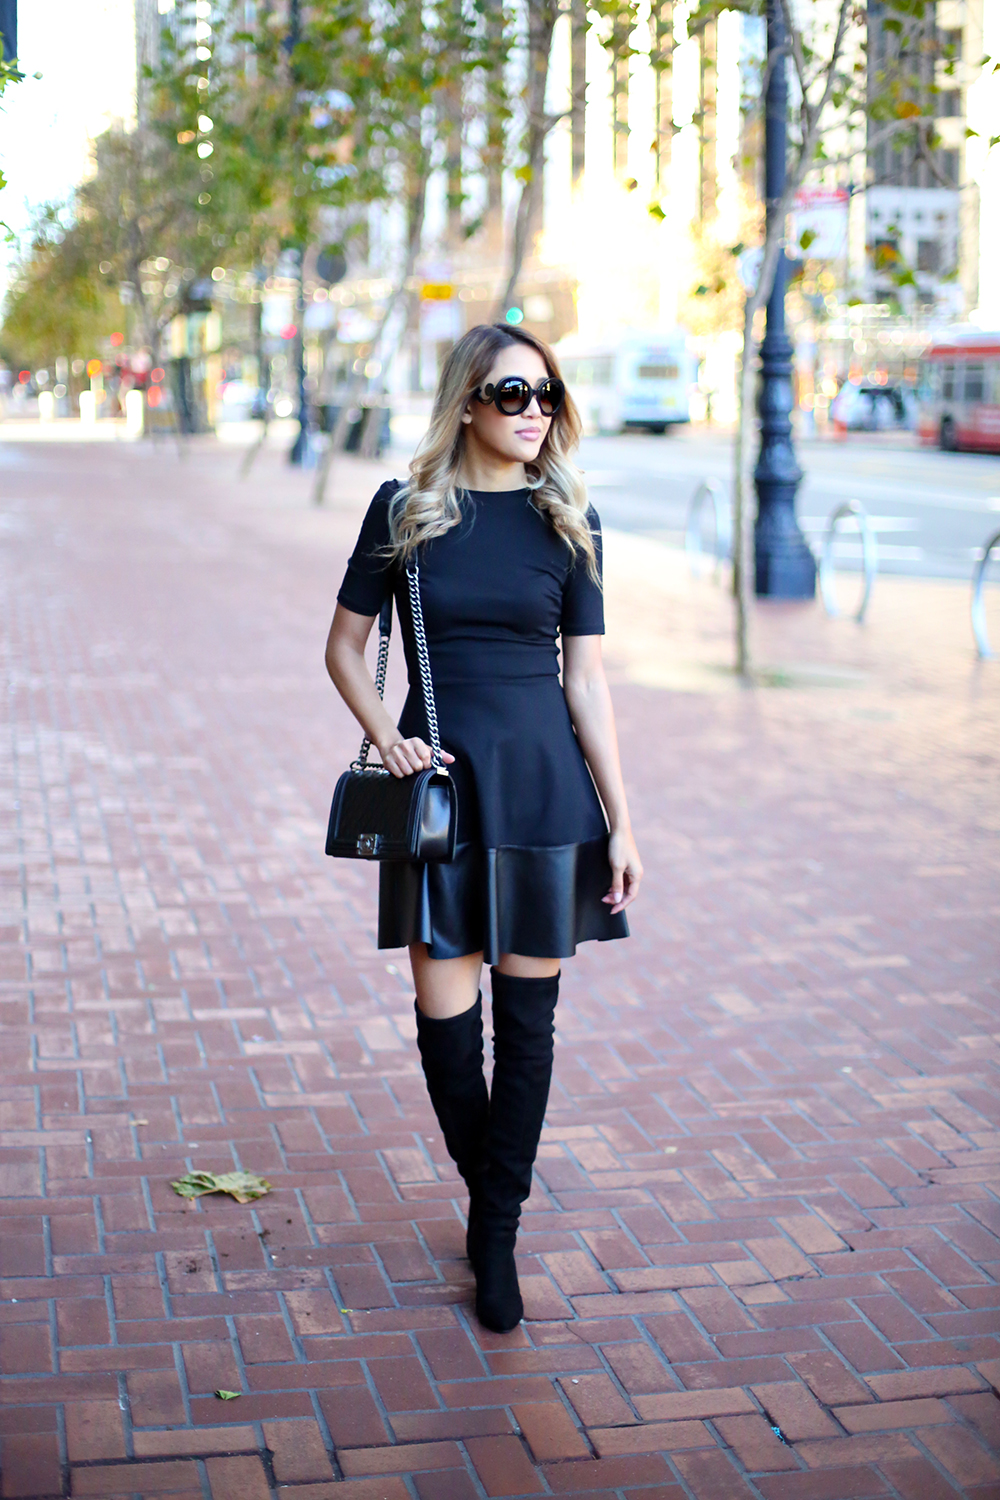 Beyond Basic Blog Little Black Dress Aqua Faux Leather Trim Dress Chanel Le Boy Bag LBD